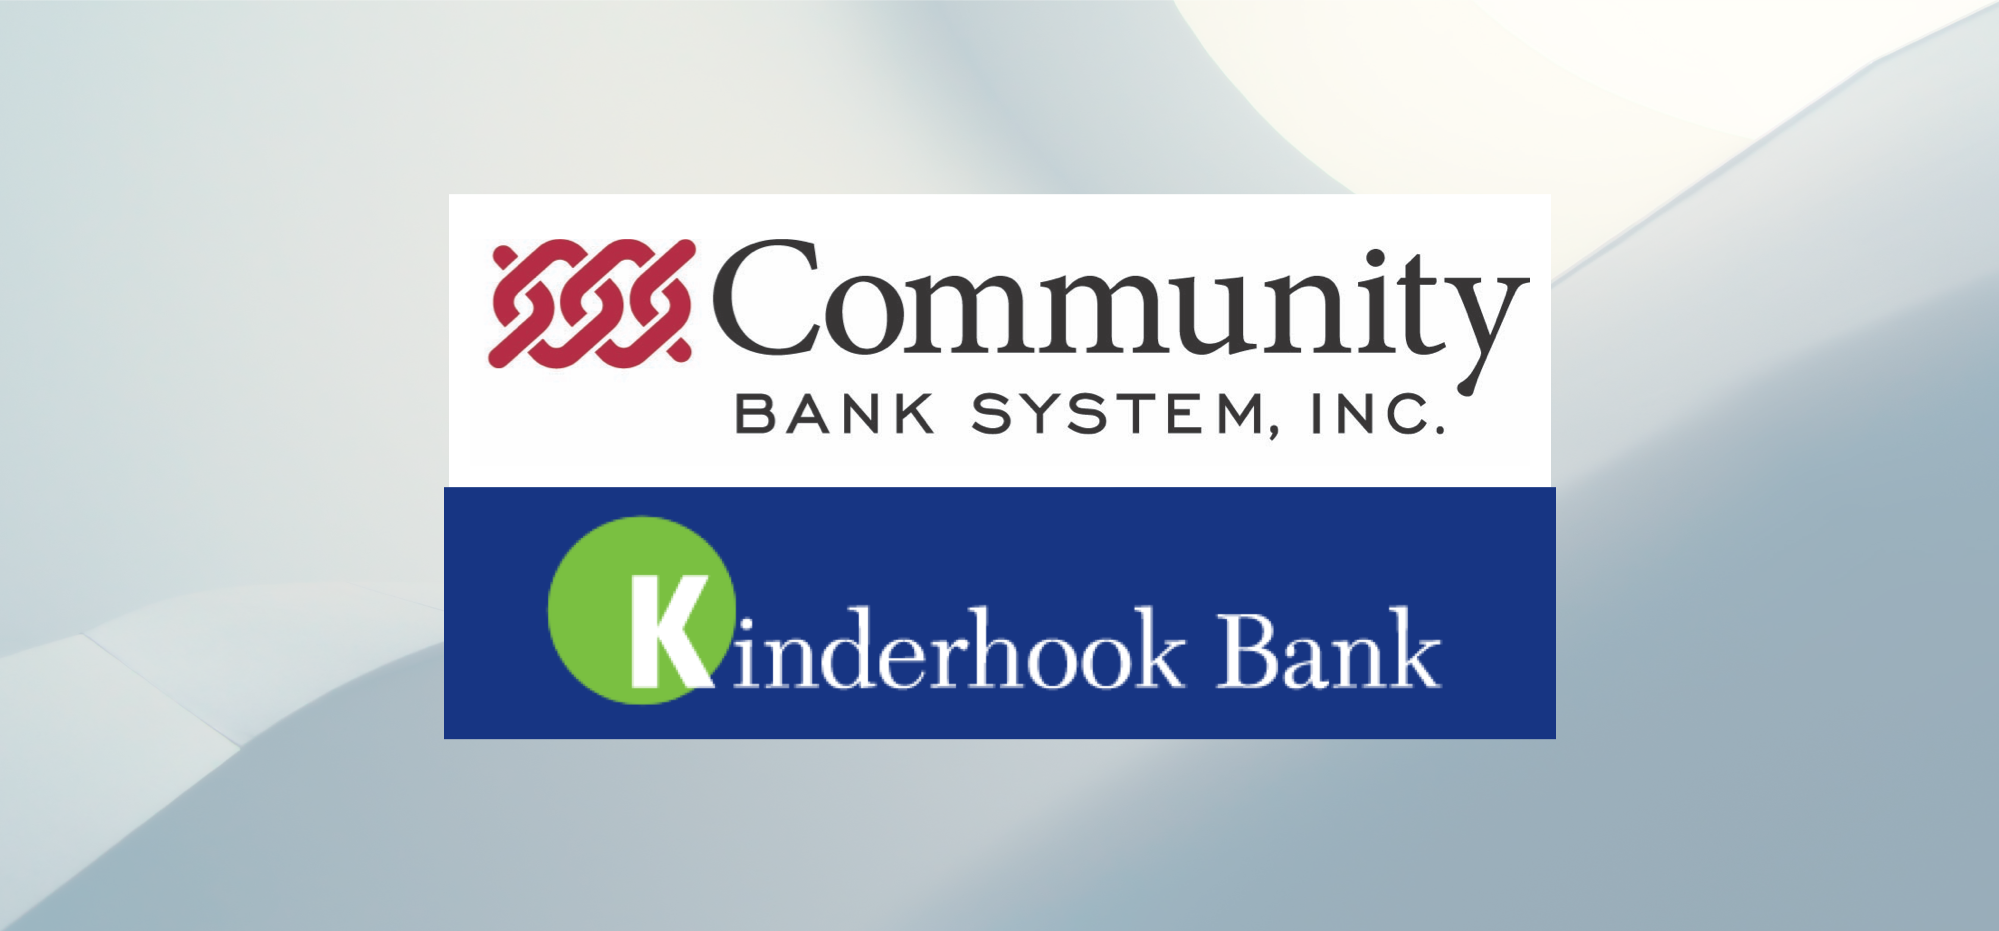 Community Bank System To Enhance Capital District Presence With Acquisition Of Kinderhook Bank Corp.